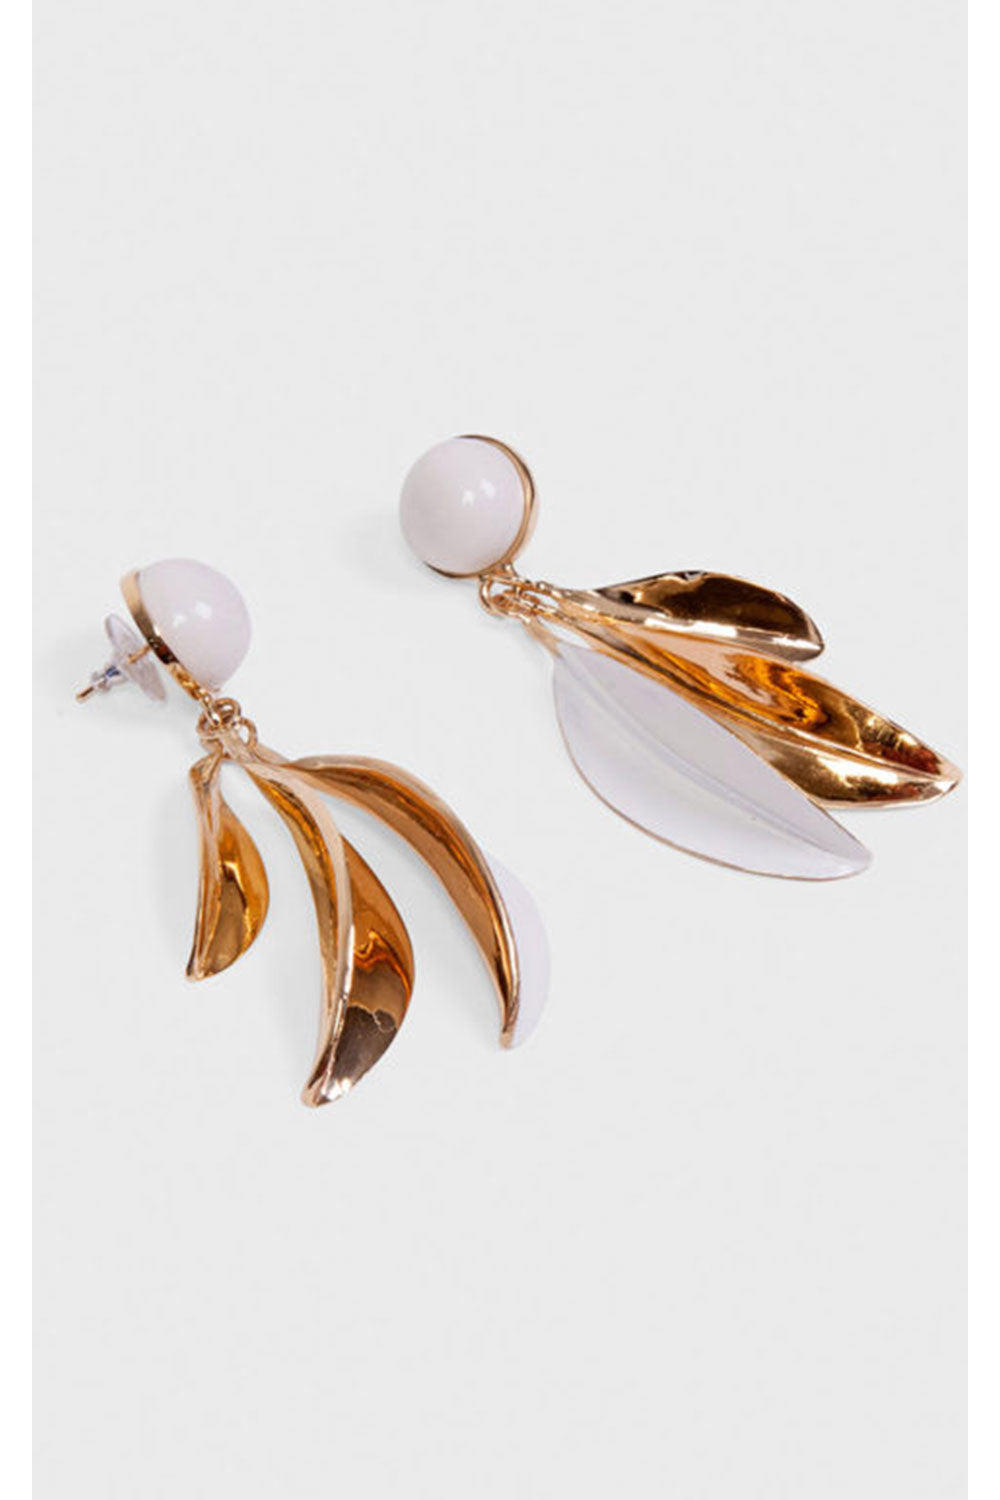 ANDRES GALLARDO PORCELAIN LEAVES AND BALLOON EARRINGS